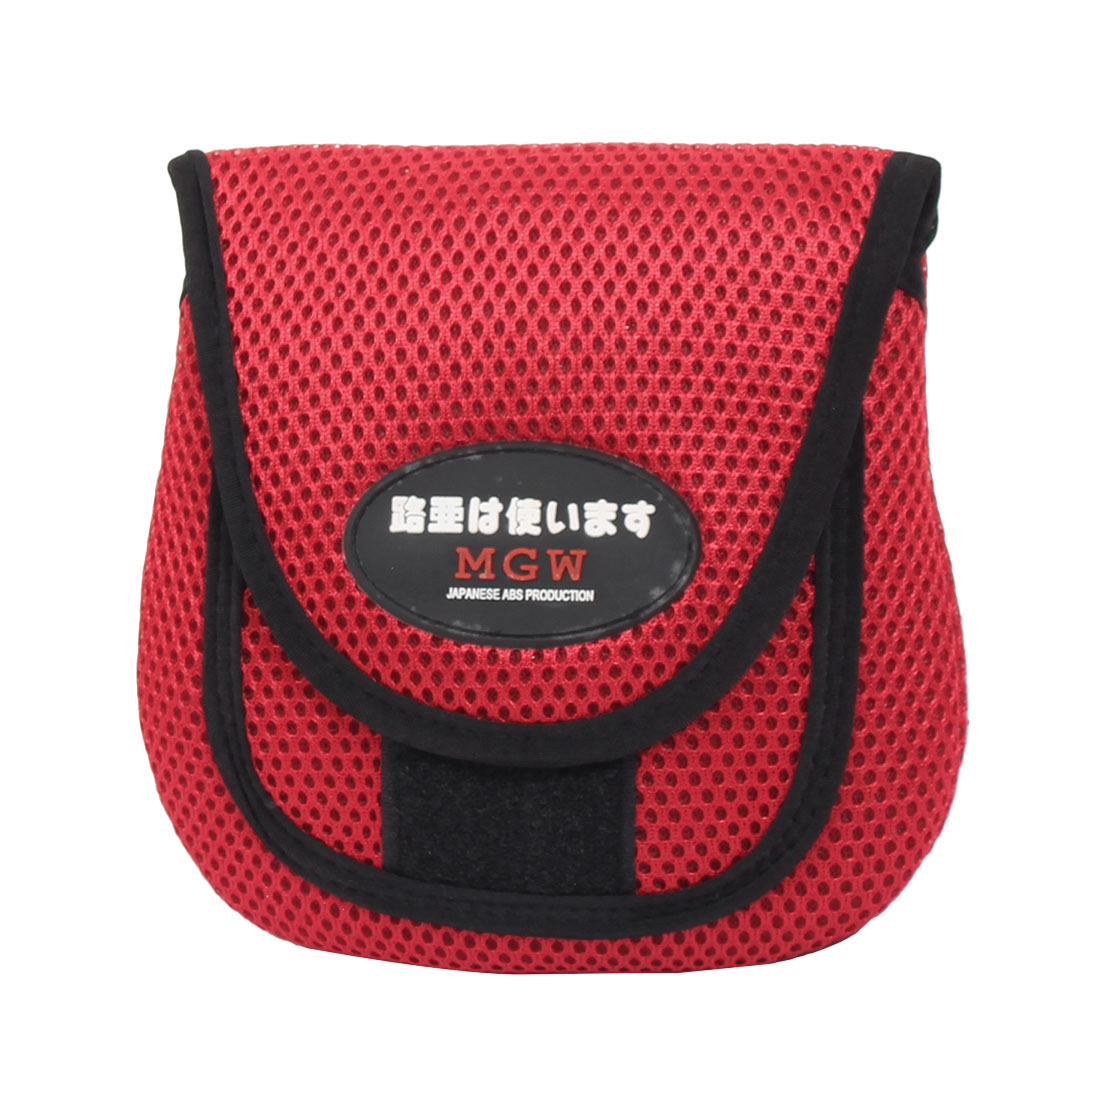 Hook Loop Closure Mesh Fishing Reel Cover Pouch Bag Red